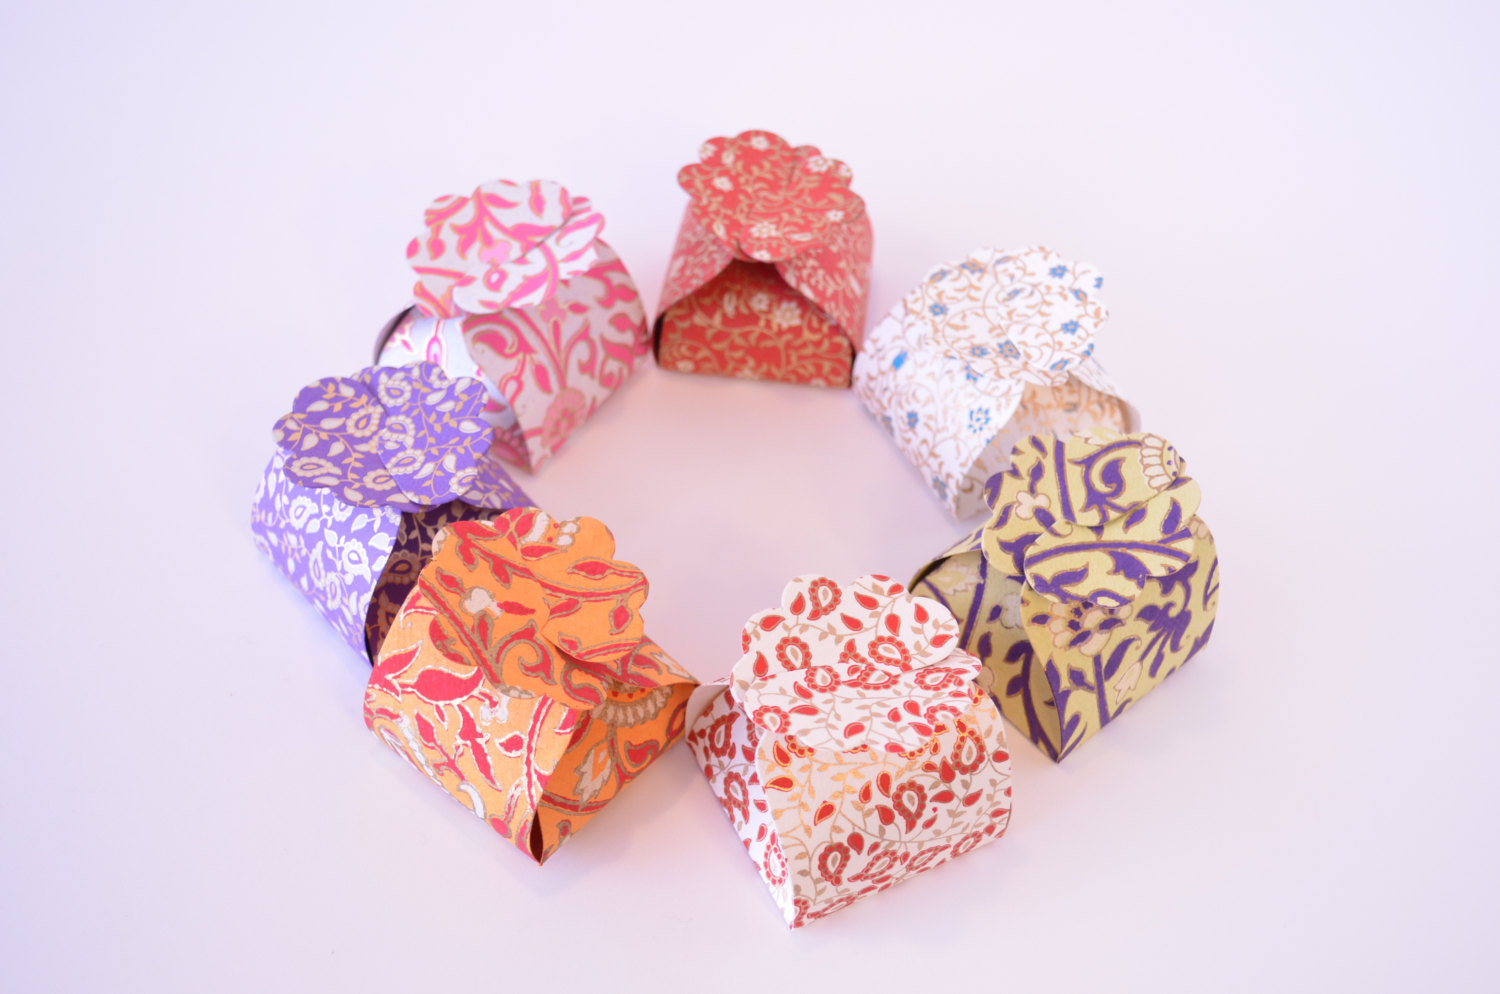 5 small favor boxes ring box wedding gift box indian wedding favor box diwali party indian wedding sweets holiday favor box ornament wedding favor boxes